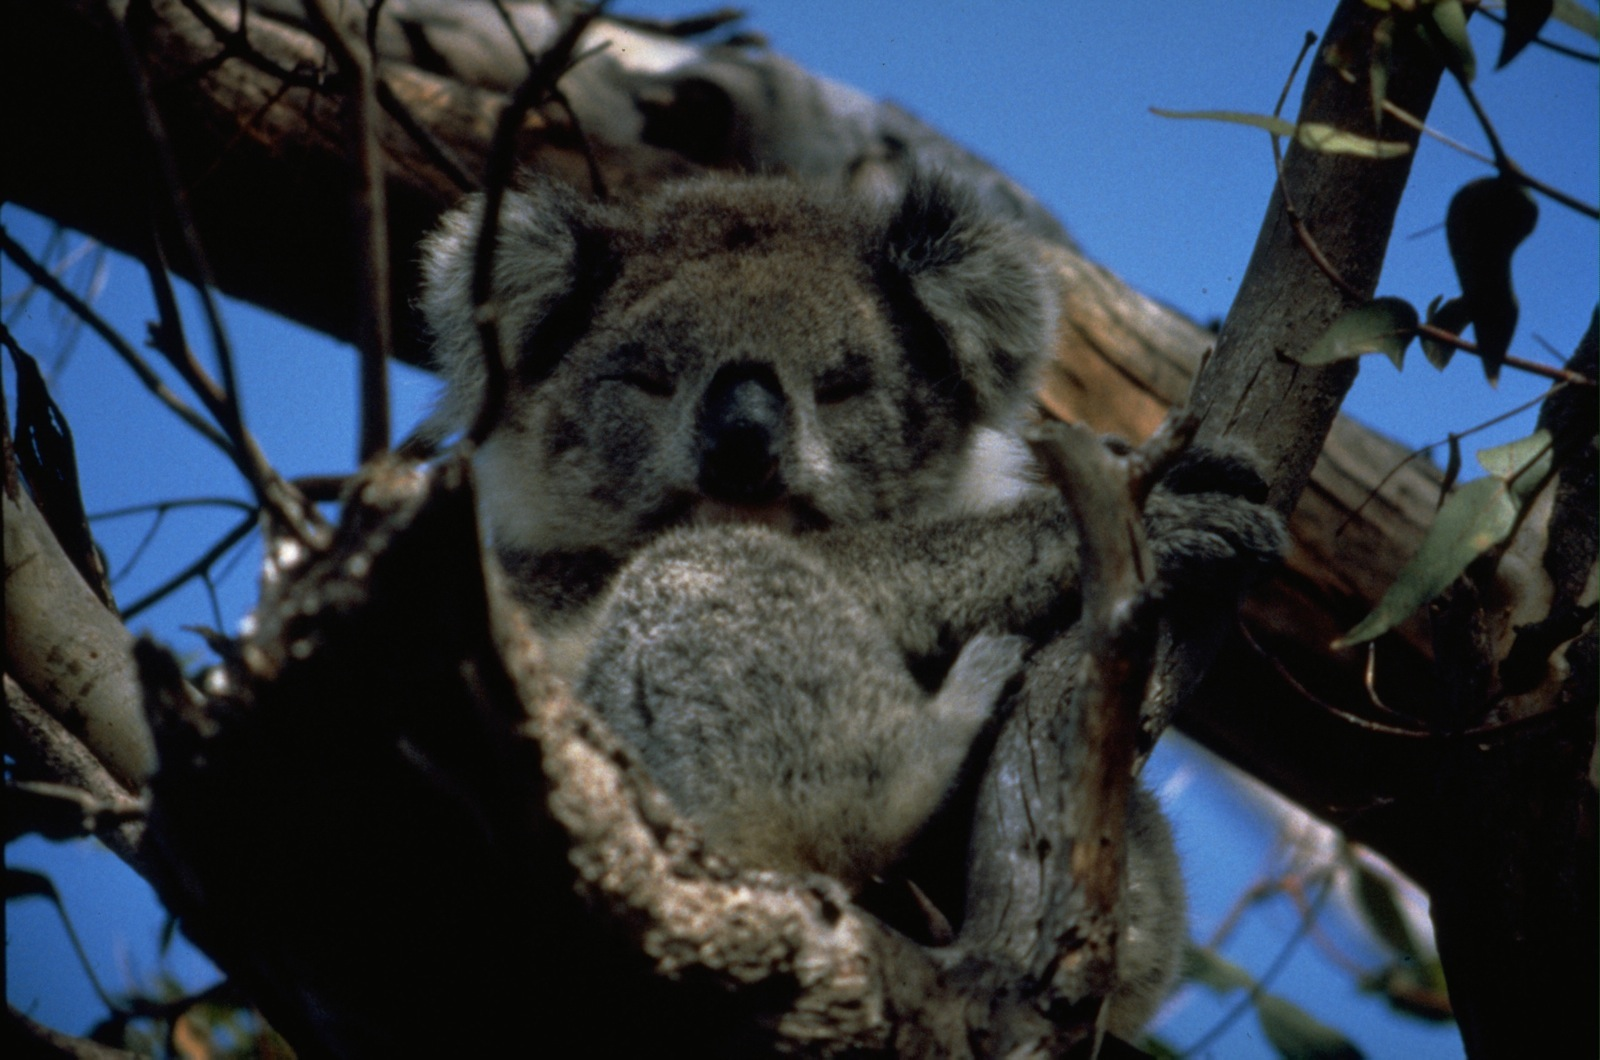 A koala bear looks down from a tree outside Cardwell, Australia.